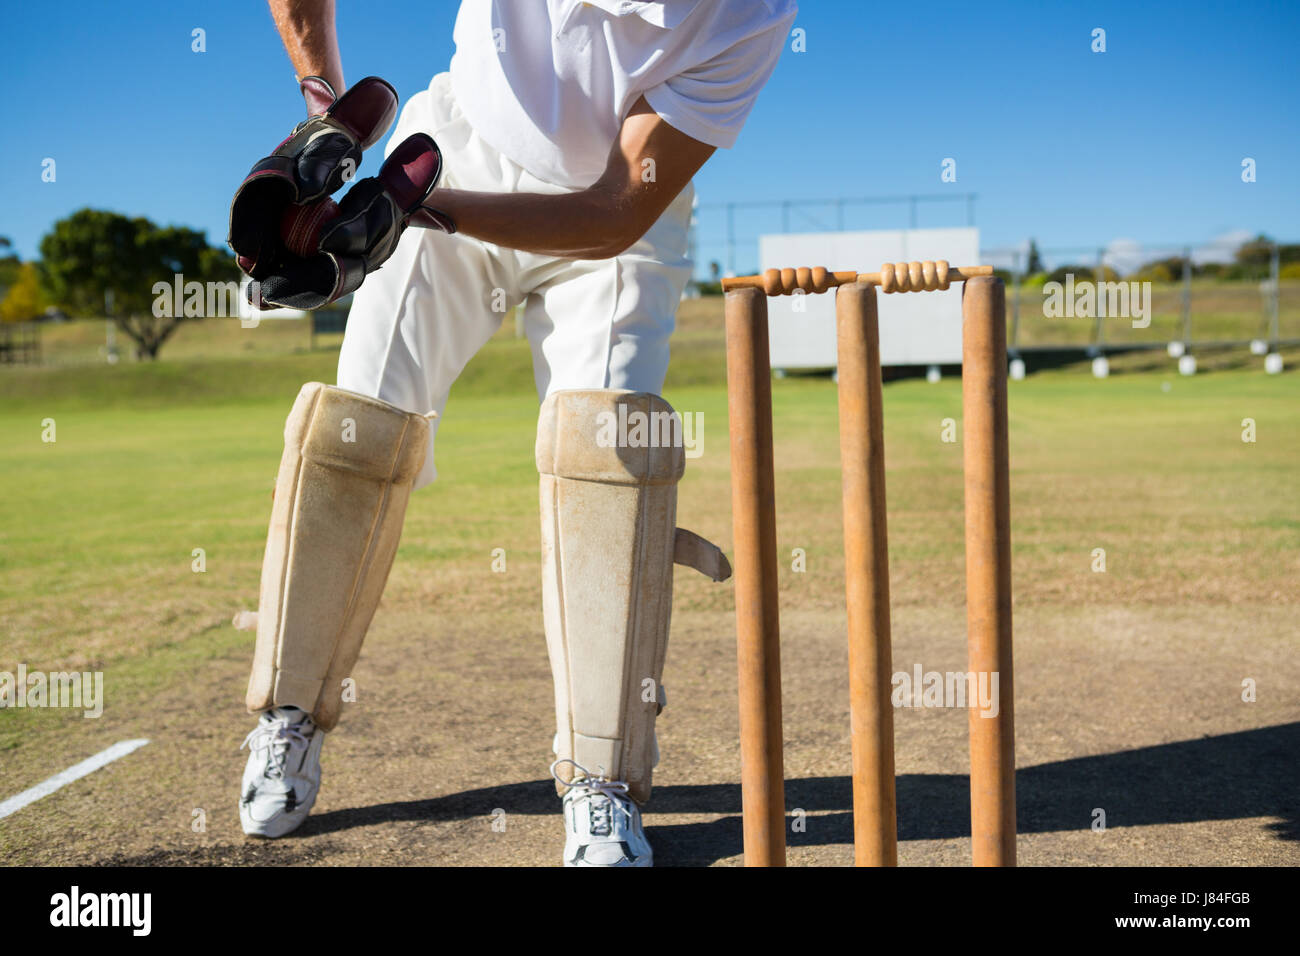 Low section of wicket keeper standing by stumps during match on sunny day - Stock Image